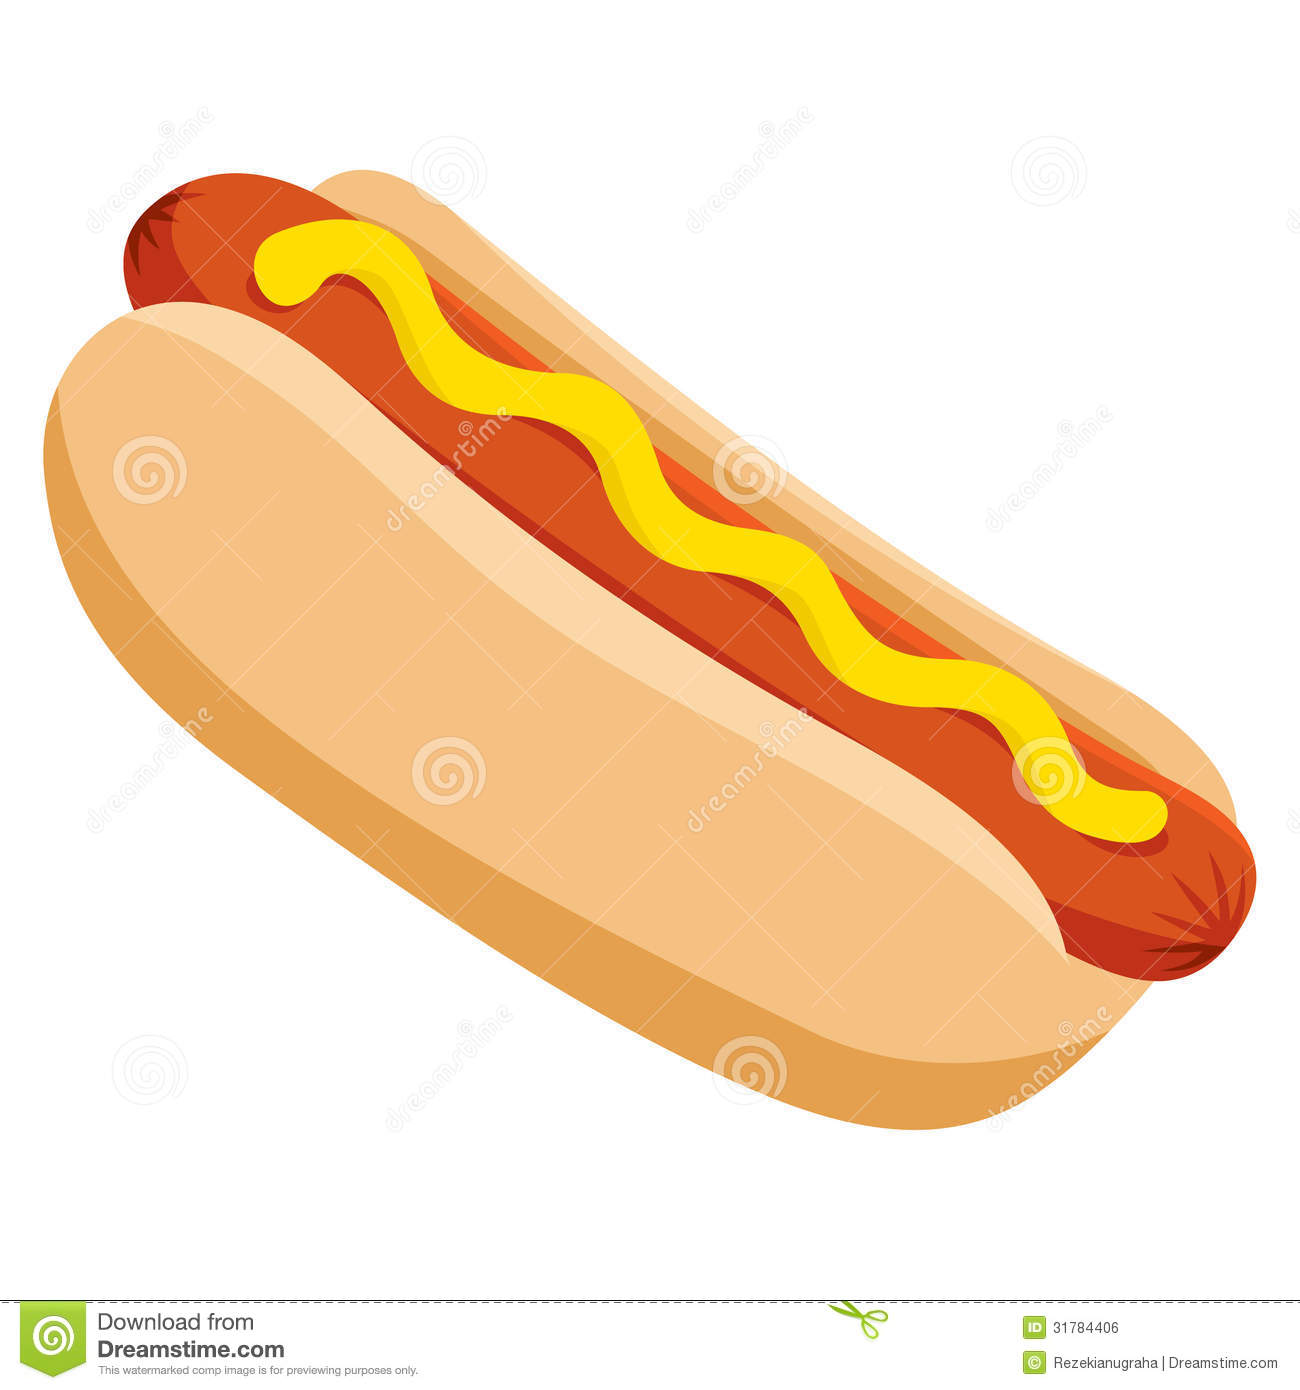 Craving Hot Dogs